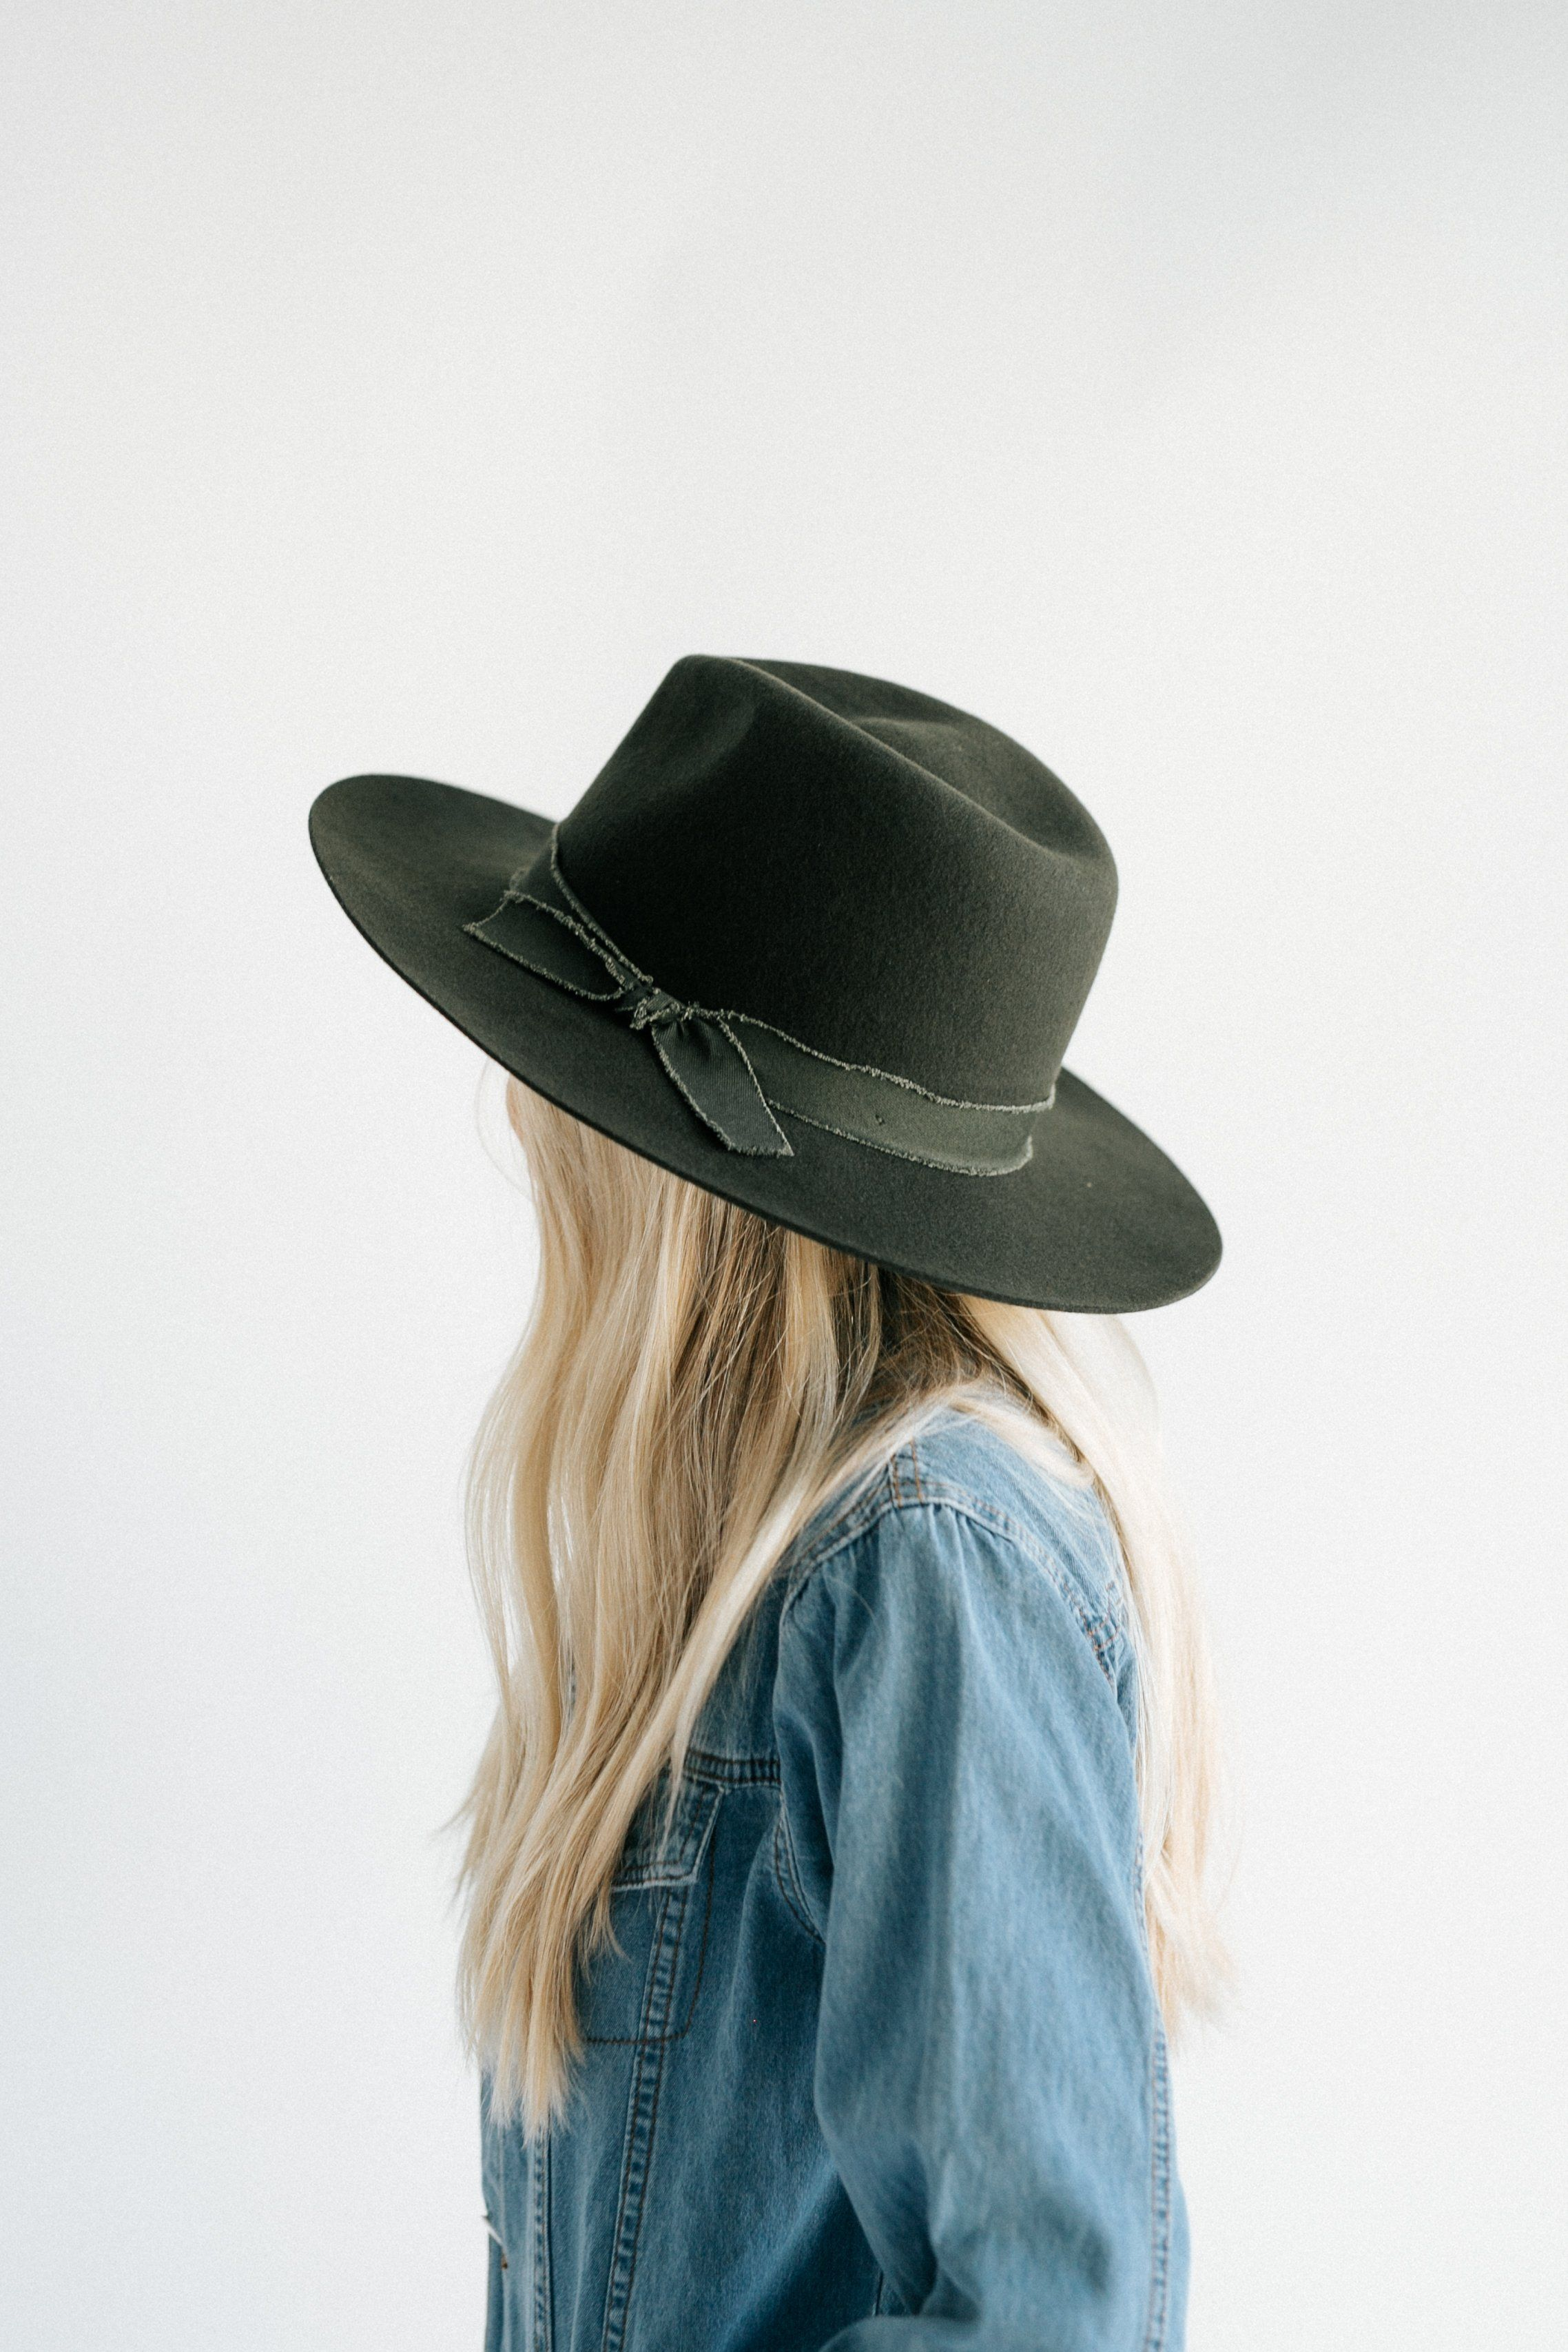 adfb8ac0fd8964 Ramona - Flat Top Black Felt Hat – GIGI PIP | Hats in 2019 | Hats, Outfits  with hats, Hipster hat